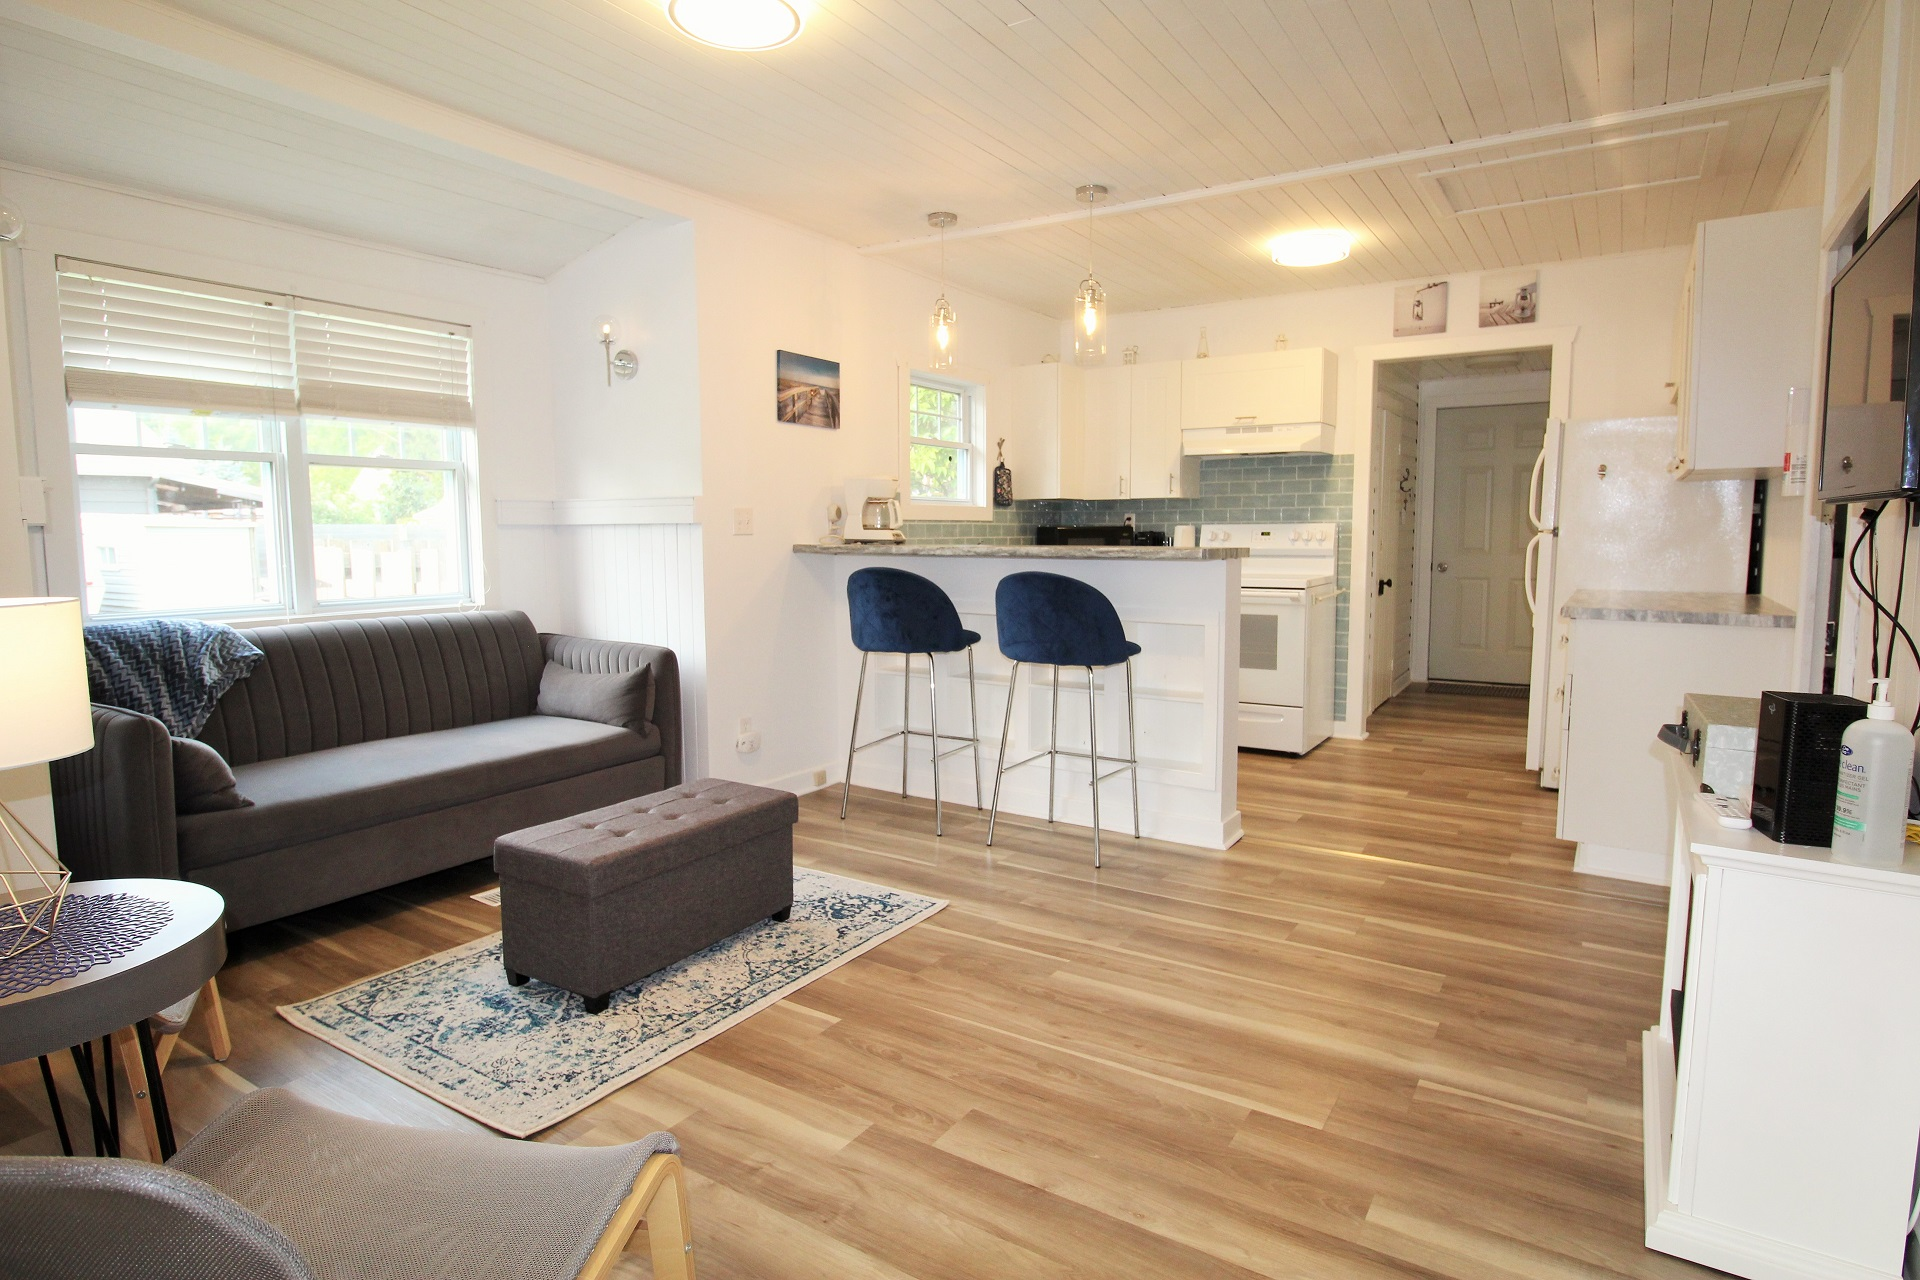 Mary Jane's Haven - living room and kitchen - Crystal Beach - Holiday Homes Property Management